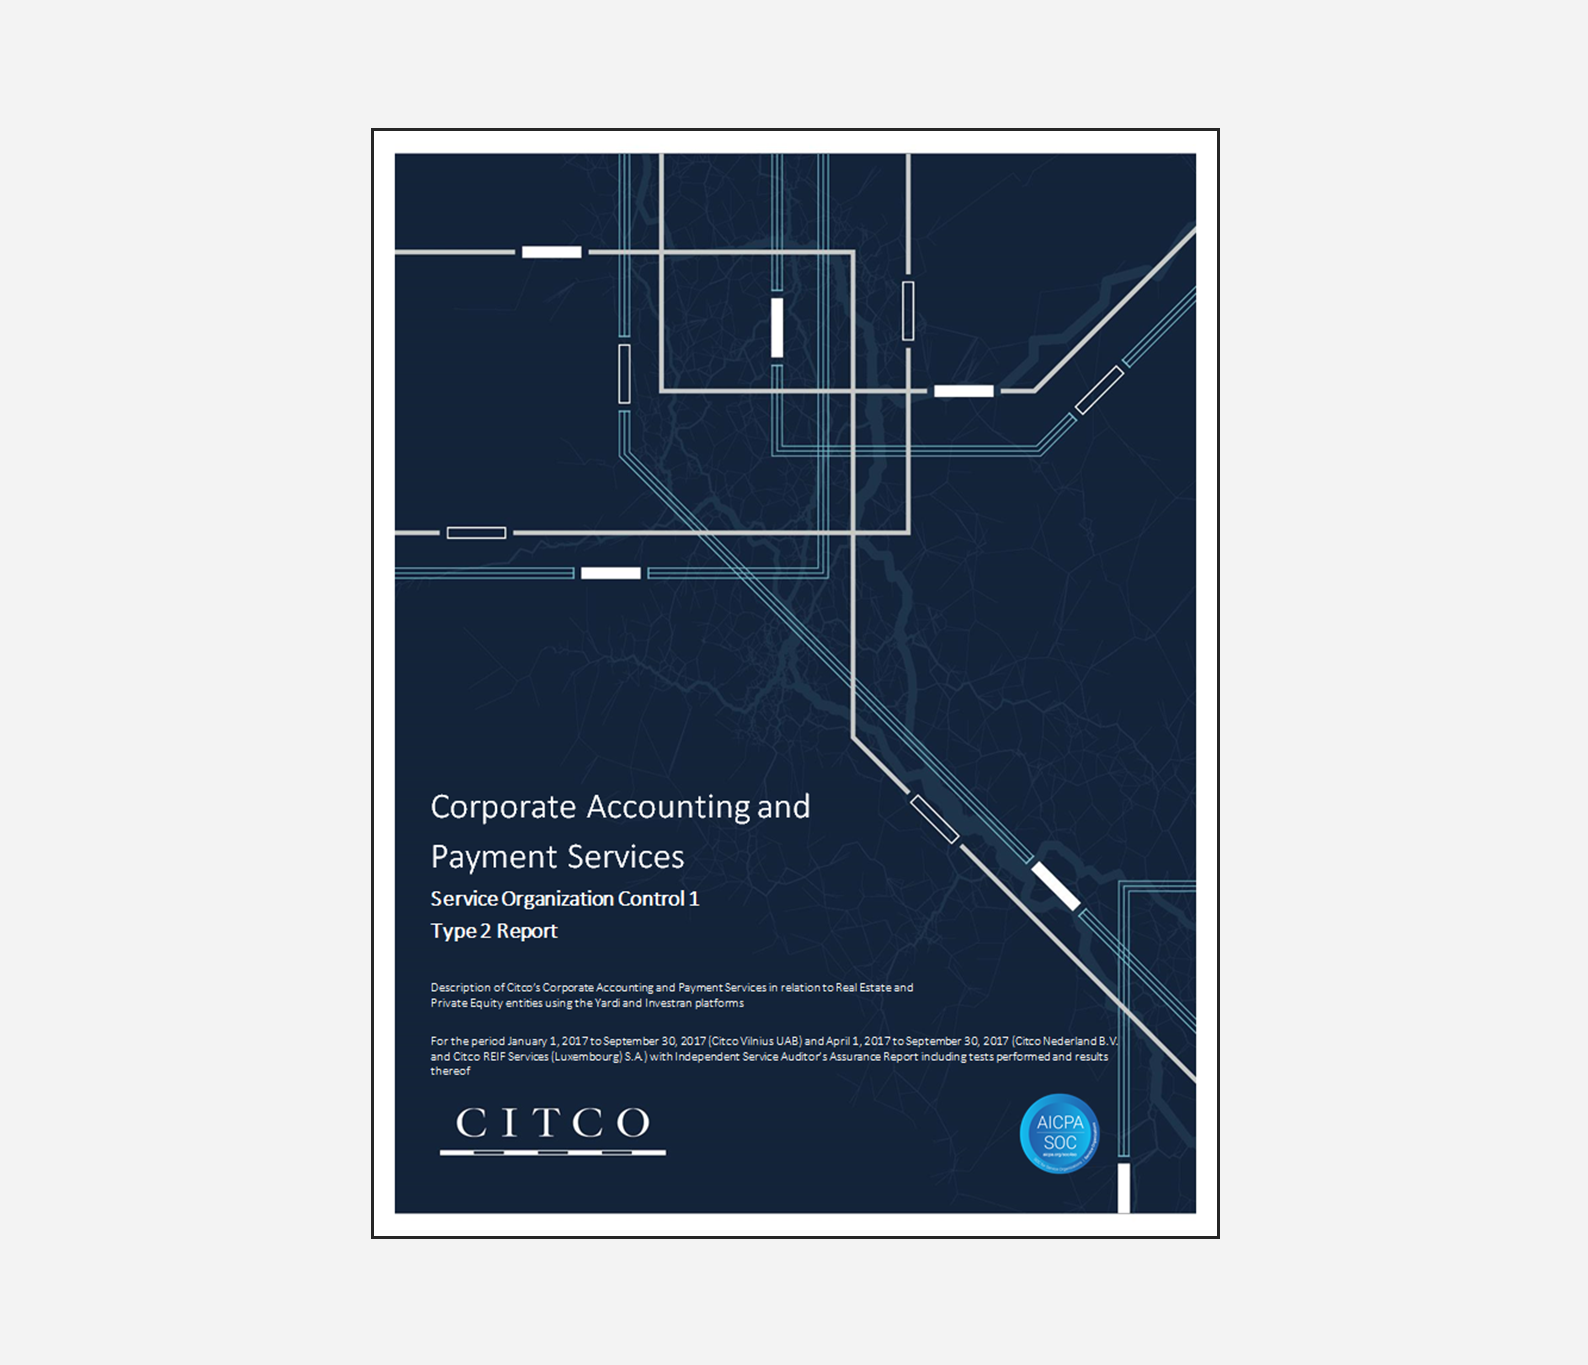 Citco announces completion of the Corporate Accounting and Payment Services SOC 1 Type #2 report